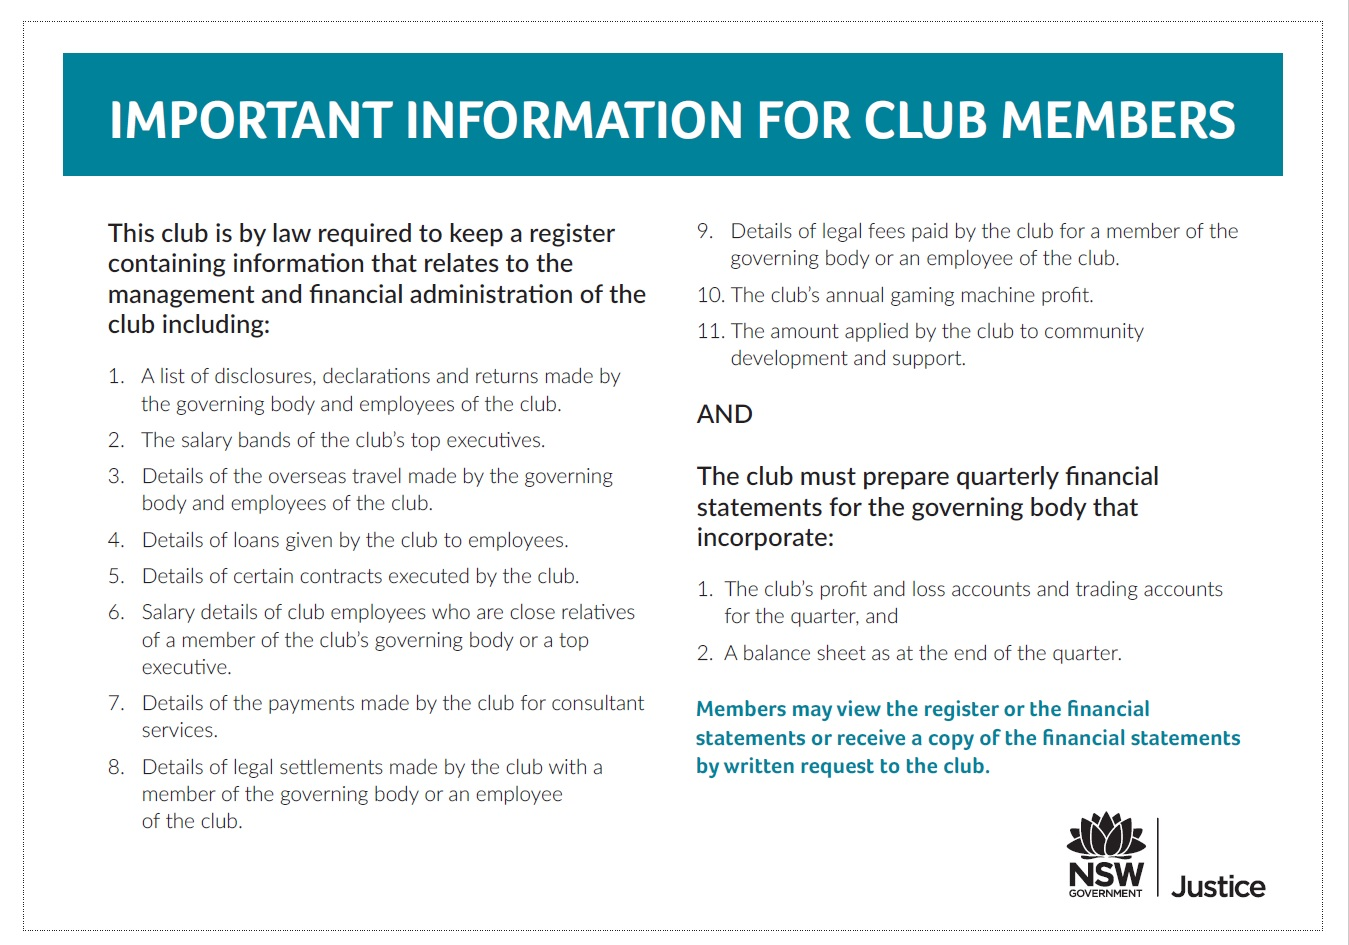 Important Information For Club Members.jpg